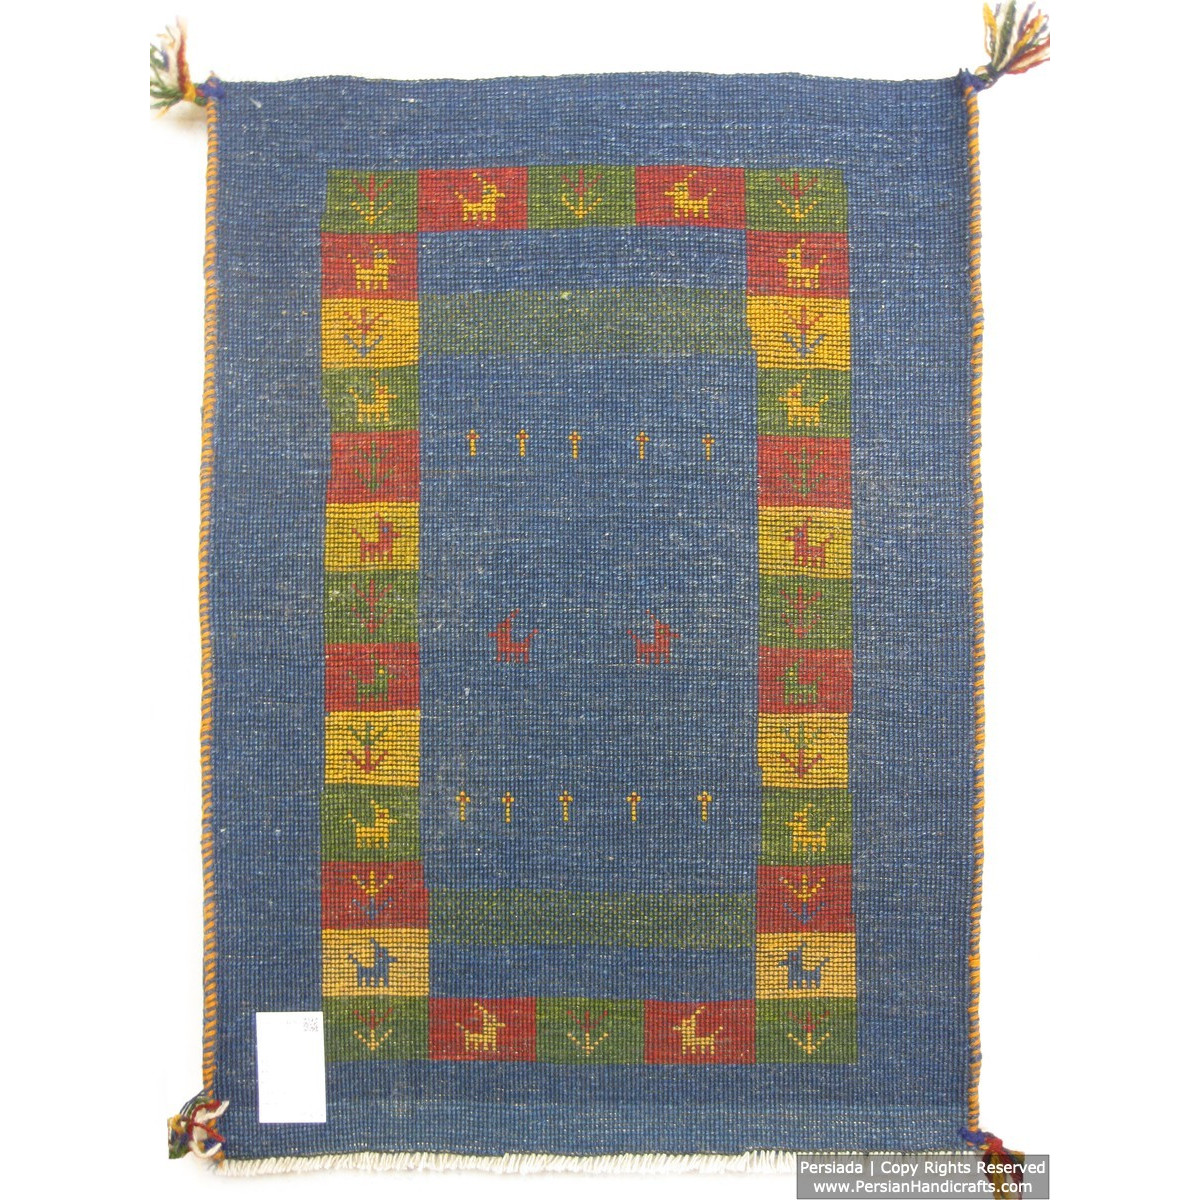 Gabbeh Wool Rug from Persian Ghashghai Nomads - RG5018-Persian Handicrafts